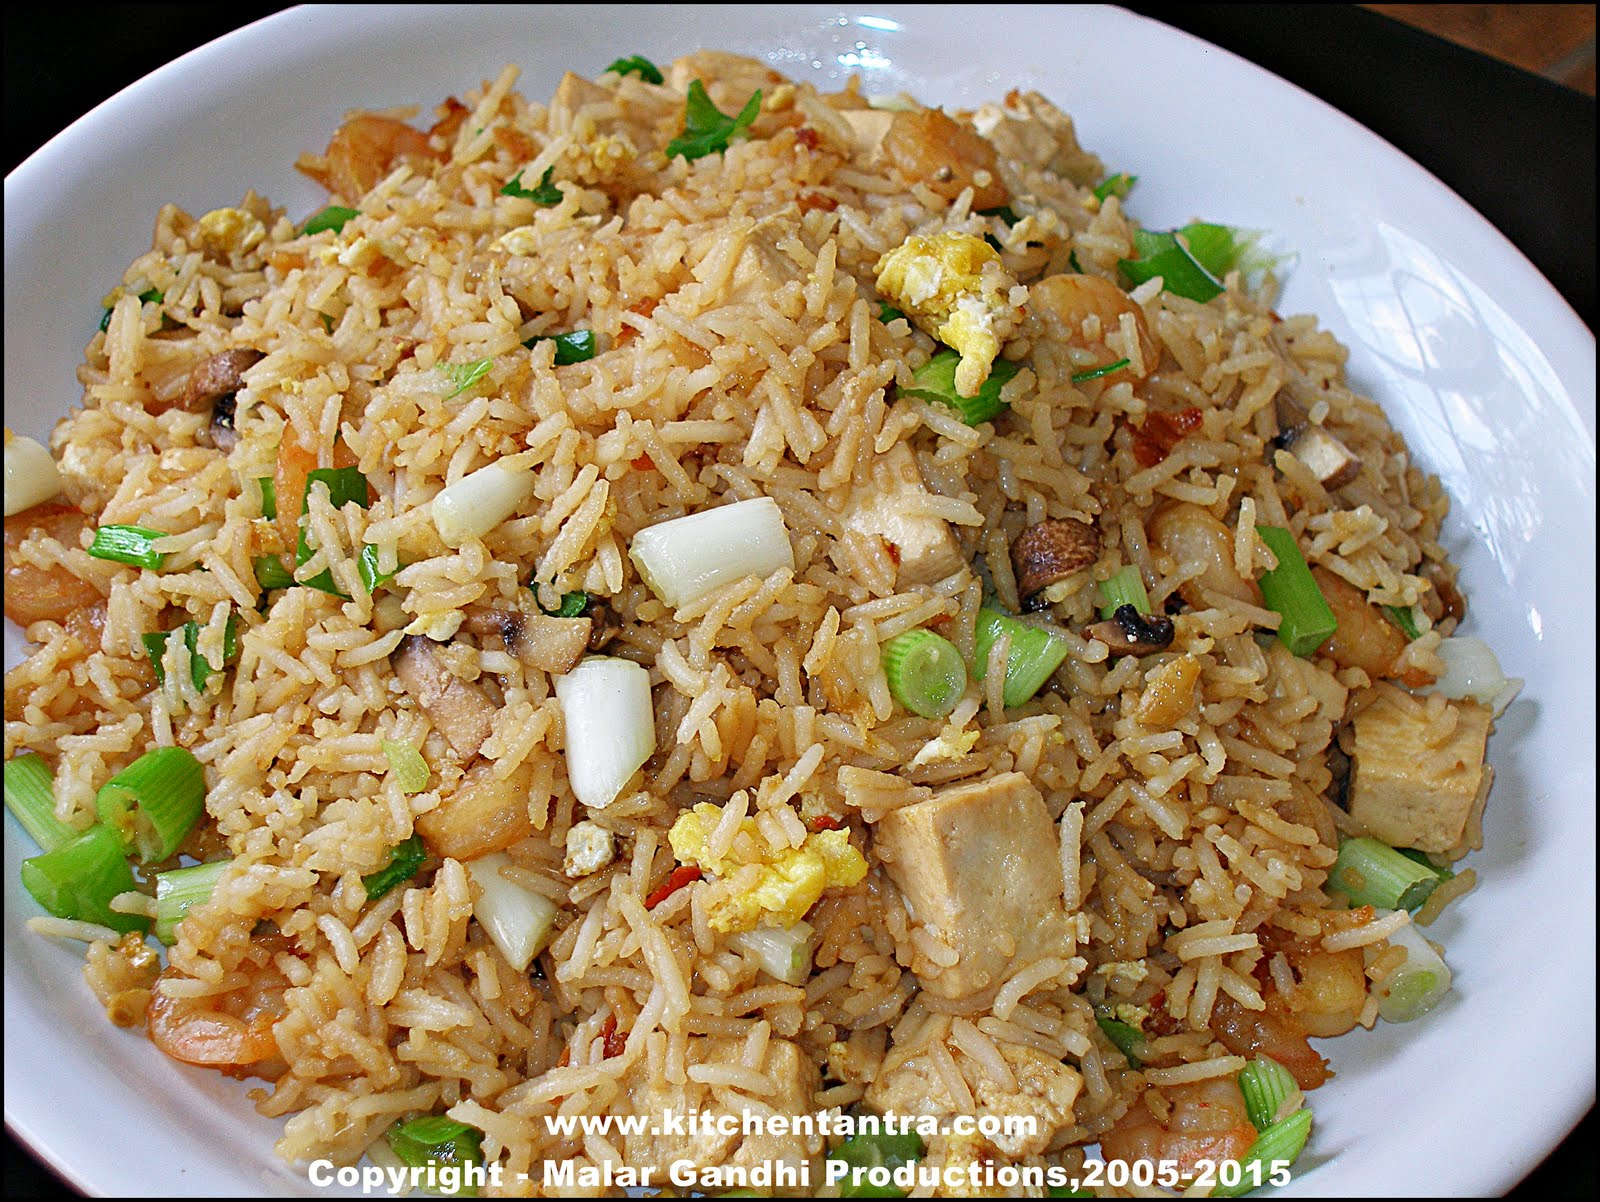 Tofu n Shrimps Fried Rice – Yet Another Variation! | Kitchen Tantra